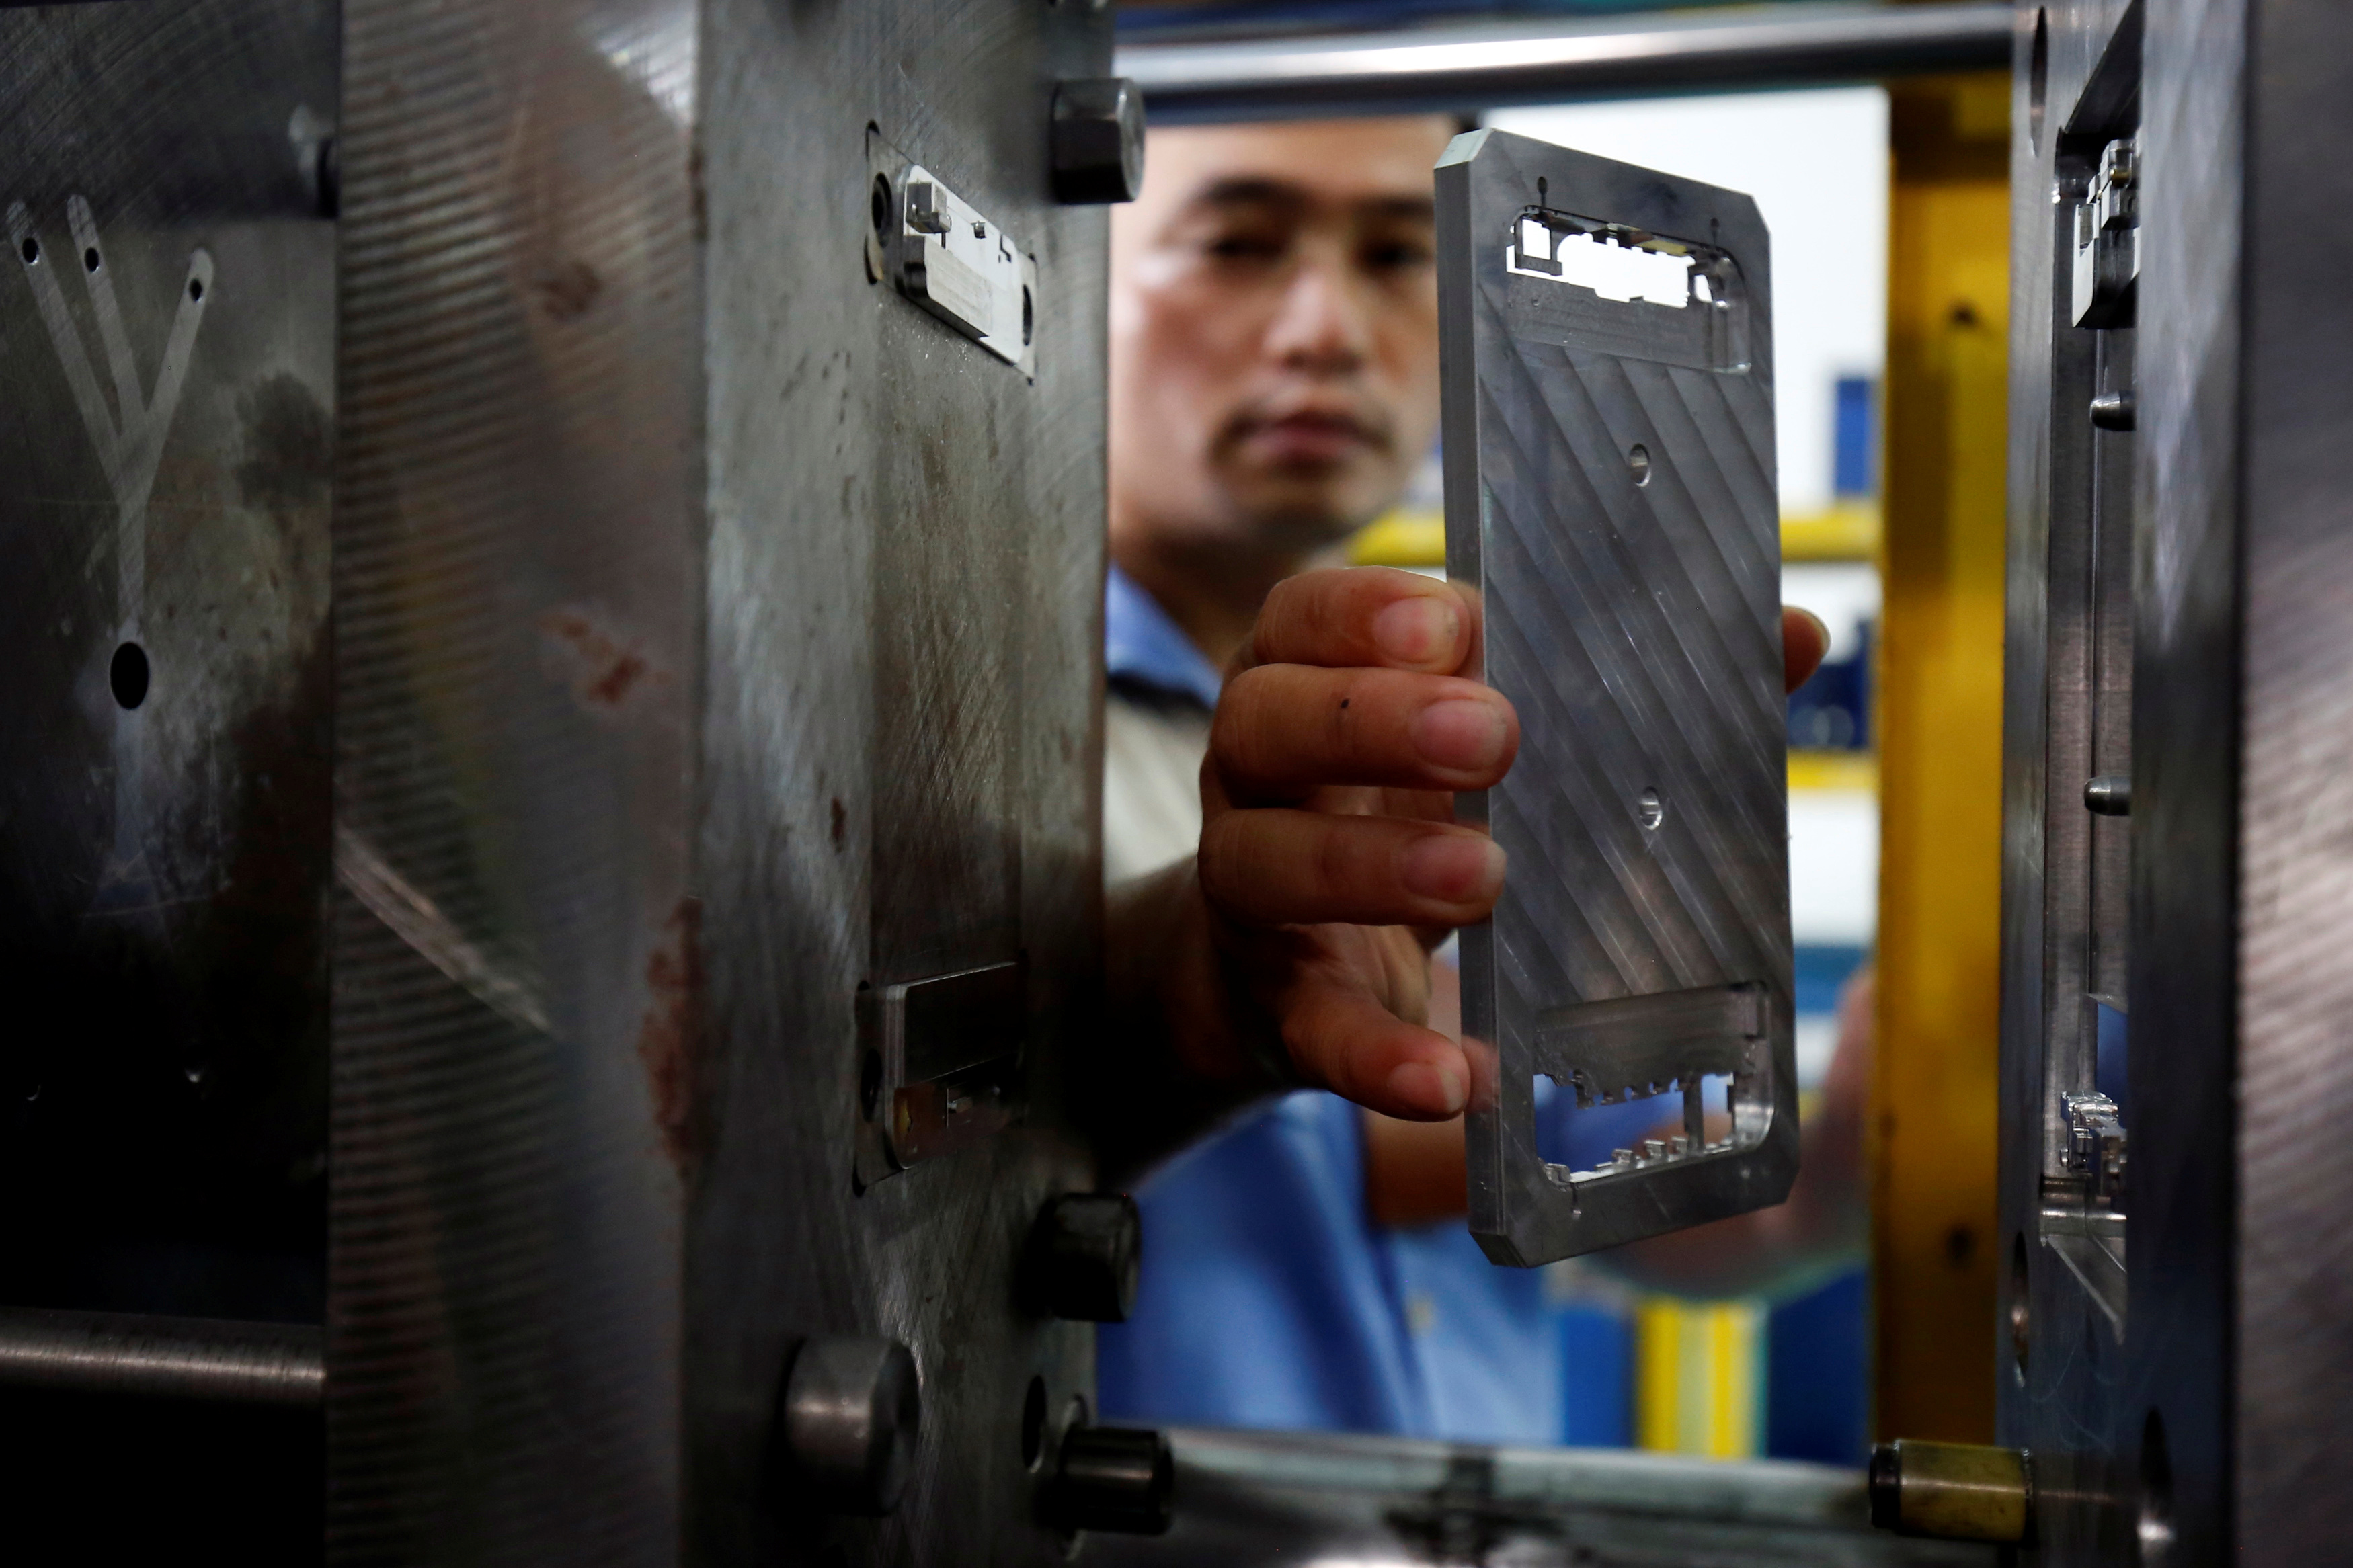 A worker holds a metal frame at an assembly plant that produces the Vietnamese smartphone BPhone, at BKAV factory, in Hanoi, Vietnam July 5, 2017. REUTERS/Kham - RC1EB392CA80